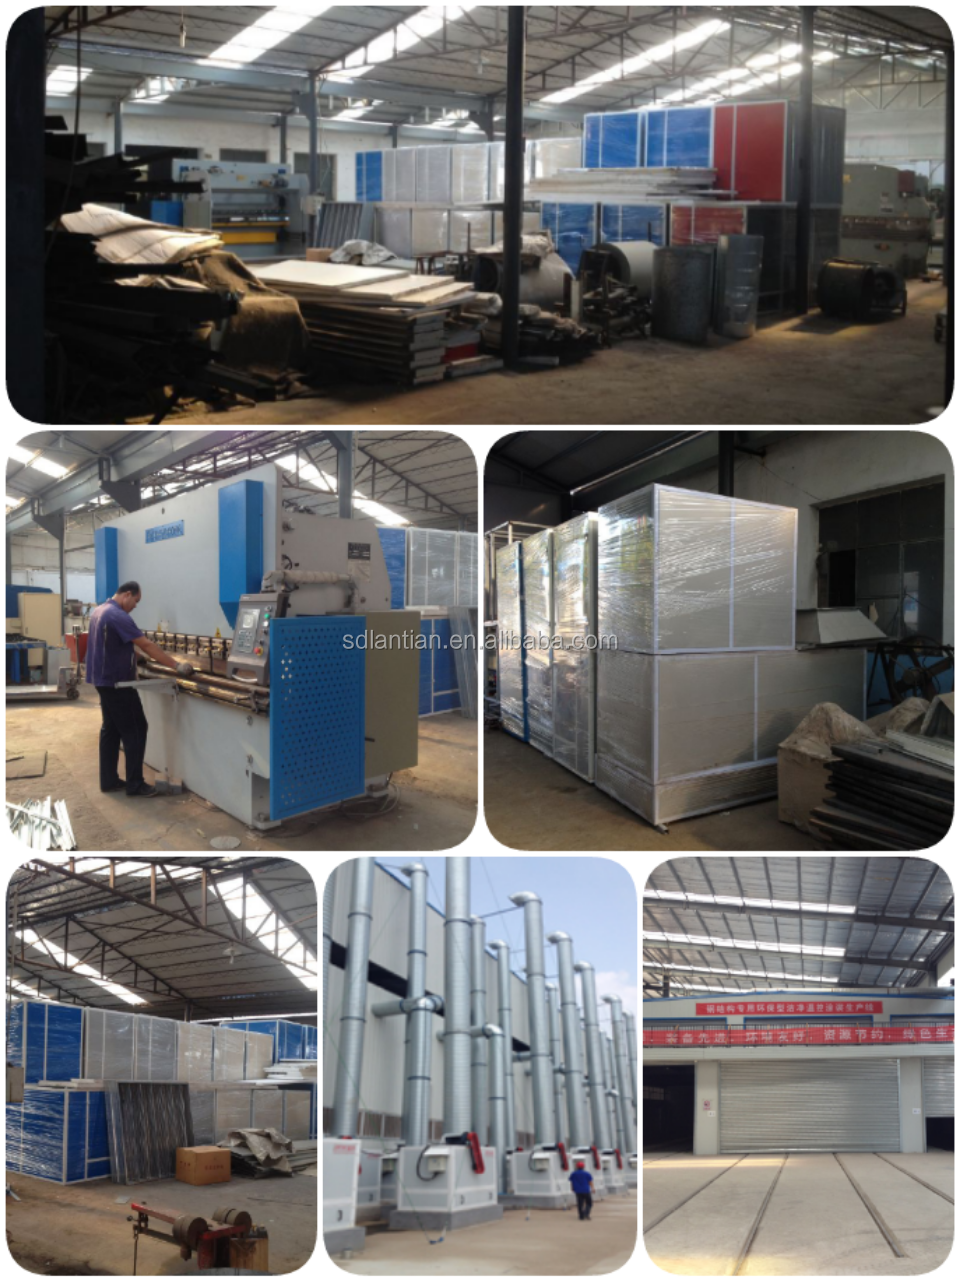 China Supplier Alibaba Paint Booth/car Paint Shop/auto Spray Booth ...